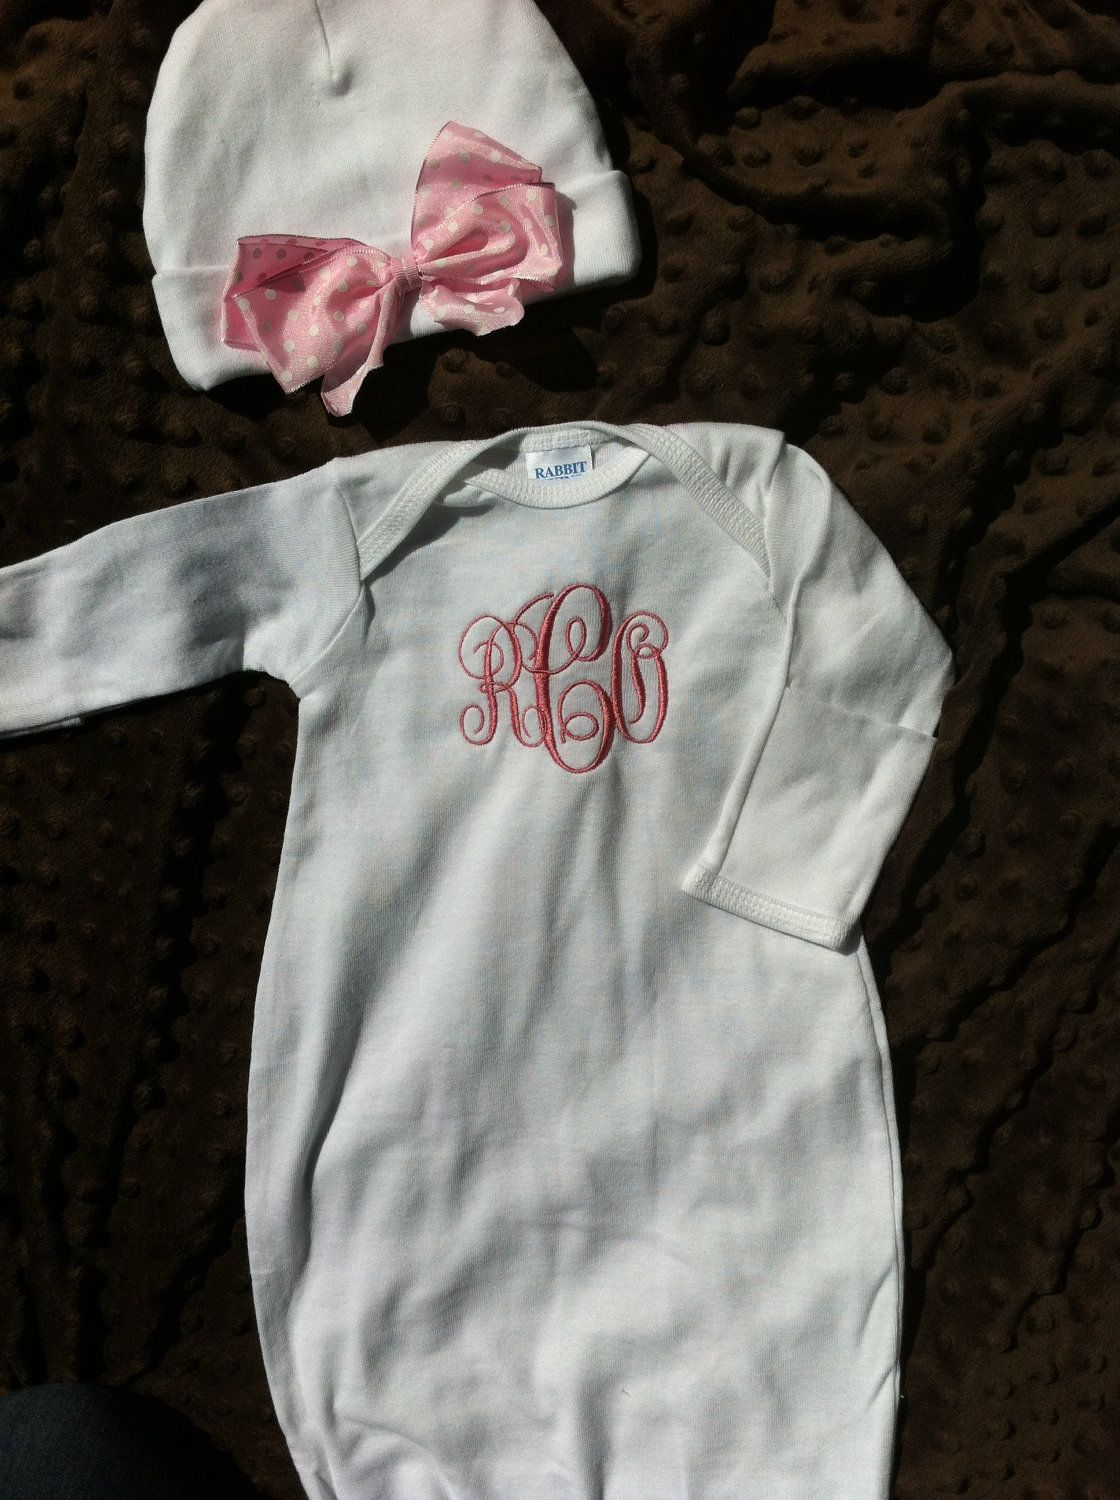 Love personalized infant gown and hat newborn gown monogrammed personalized infant gown and hat newborn gown monogrammed baby gift baby girl or baby boy 3400 via etsy negle Gallery